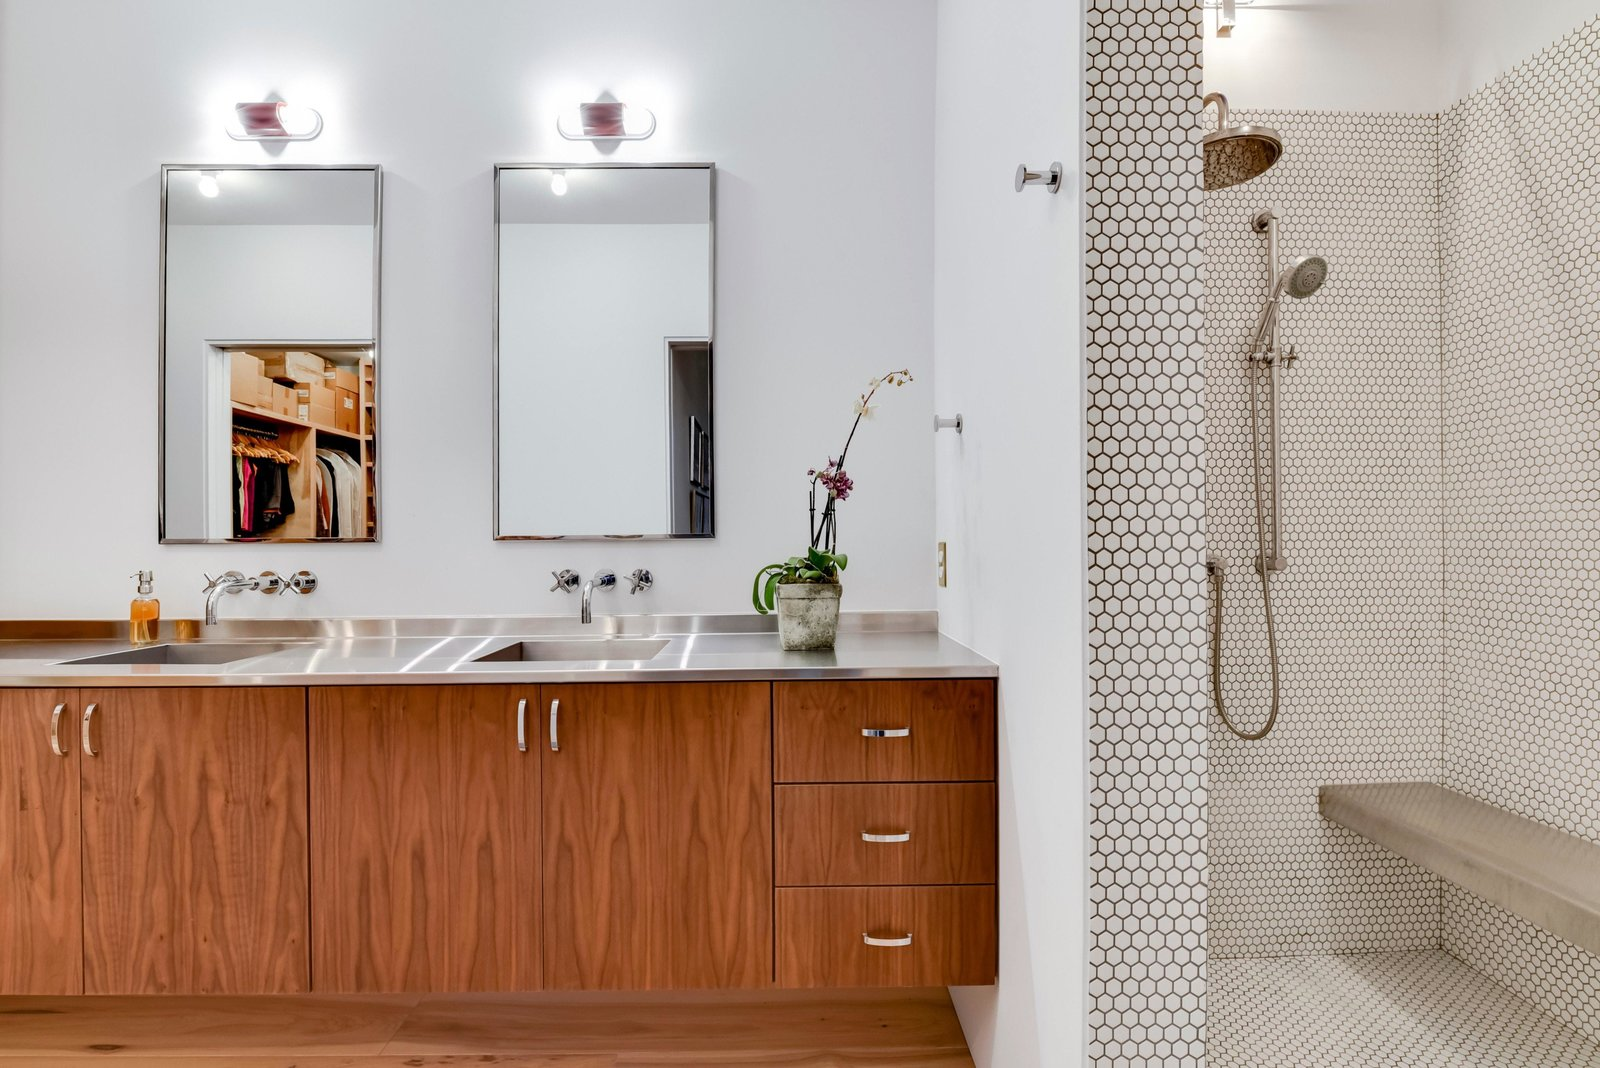 The home features four-and-a-half baths. This one with two sinks and an open penny-tile shower area.